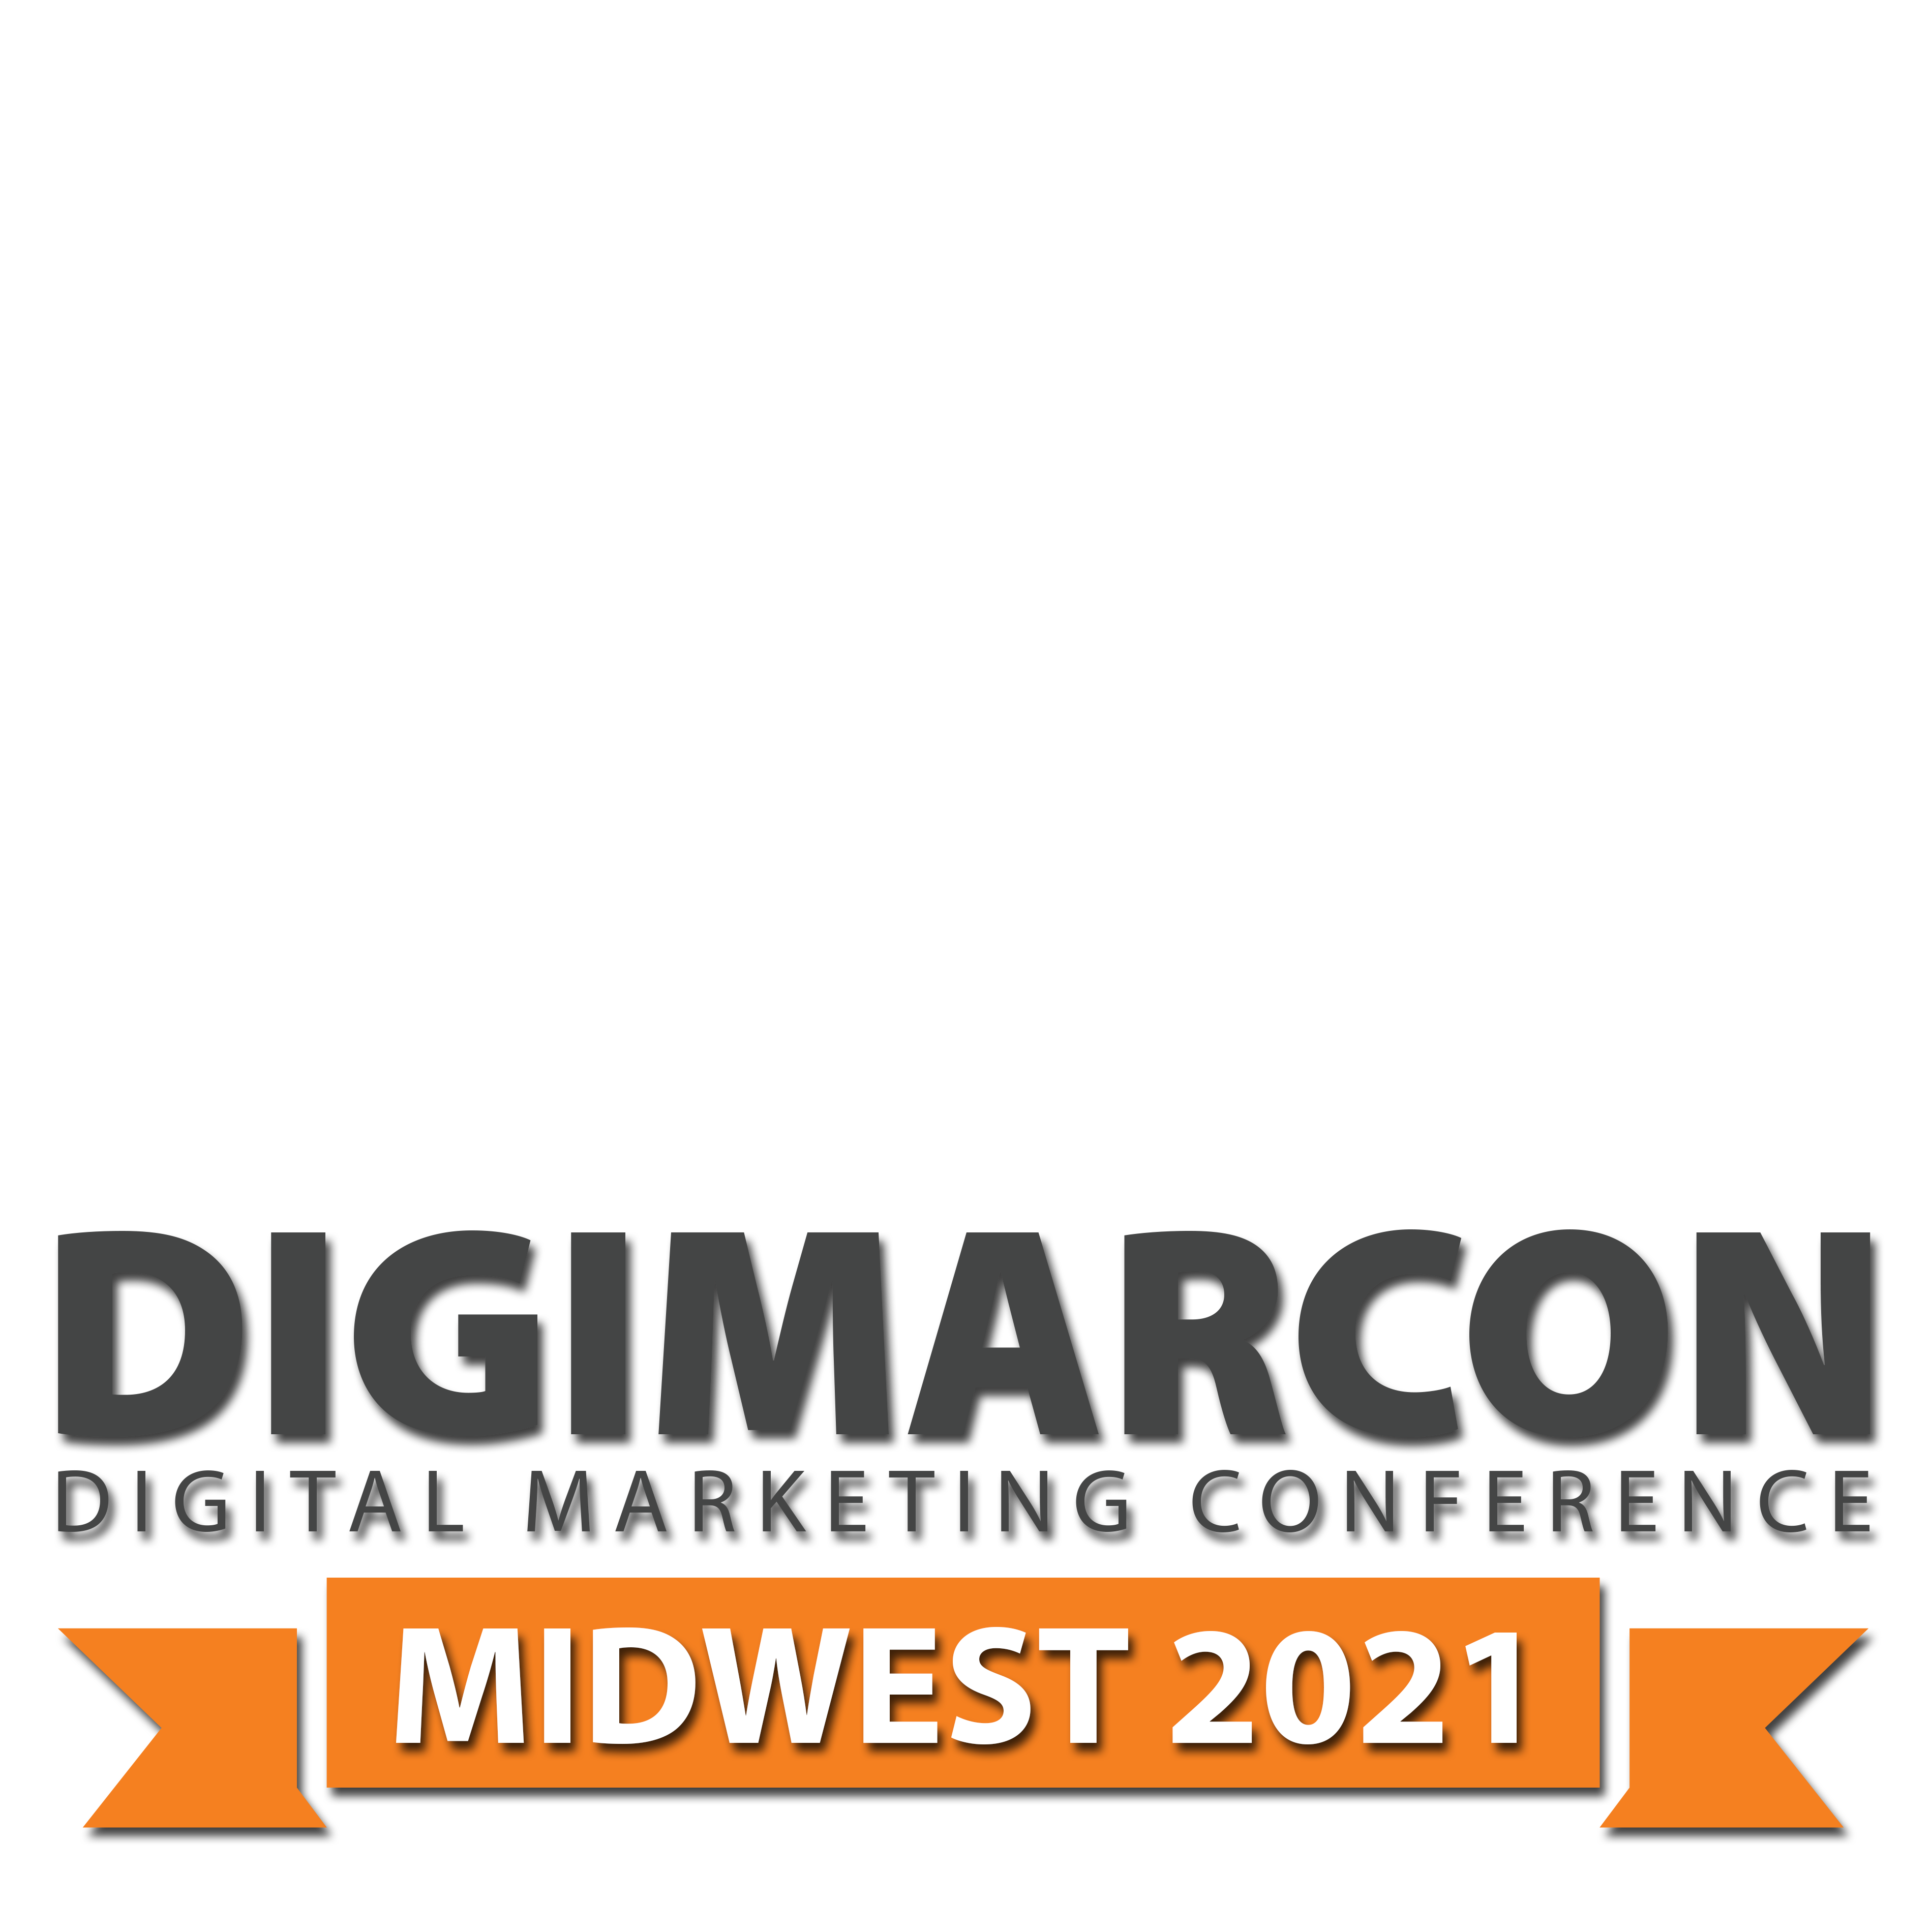 DigiMarCon Midwest 2021 – Digital Marketing Conference & Exhibition